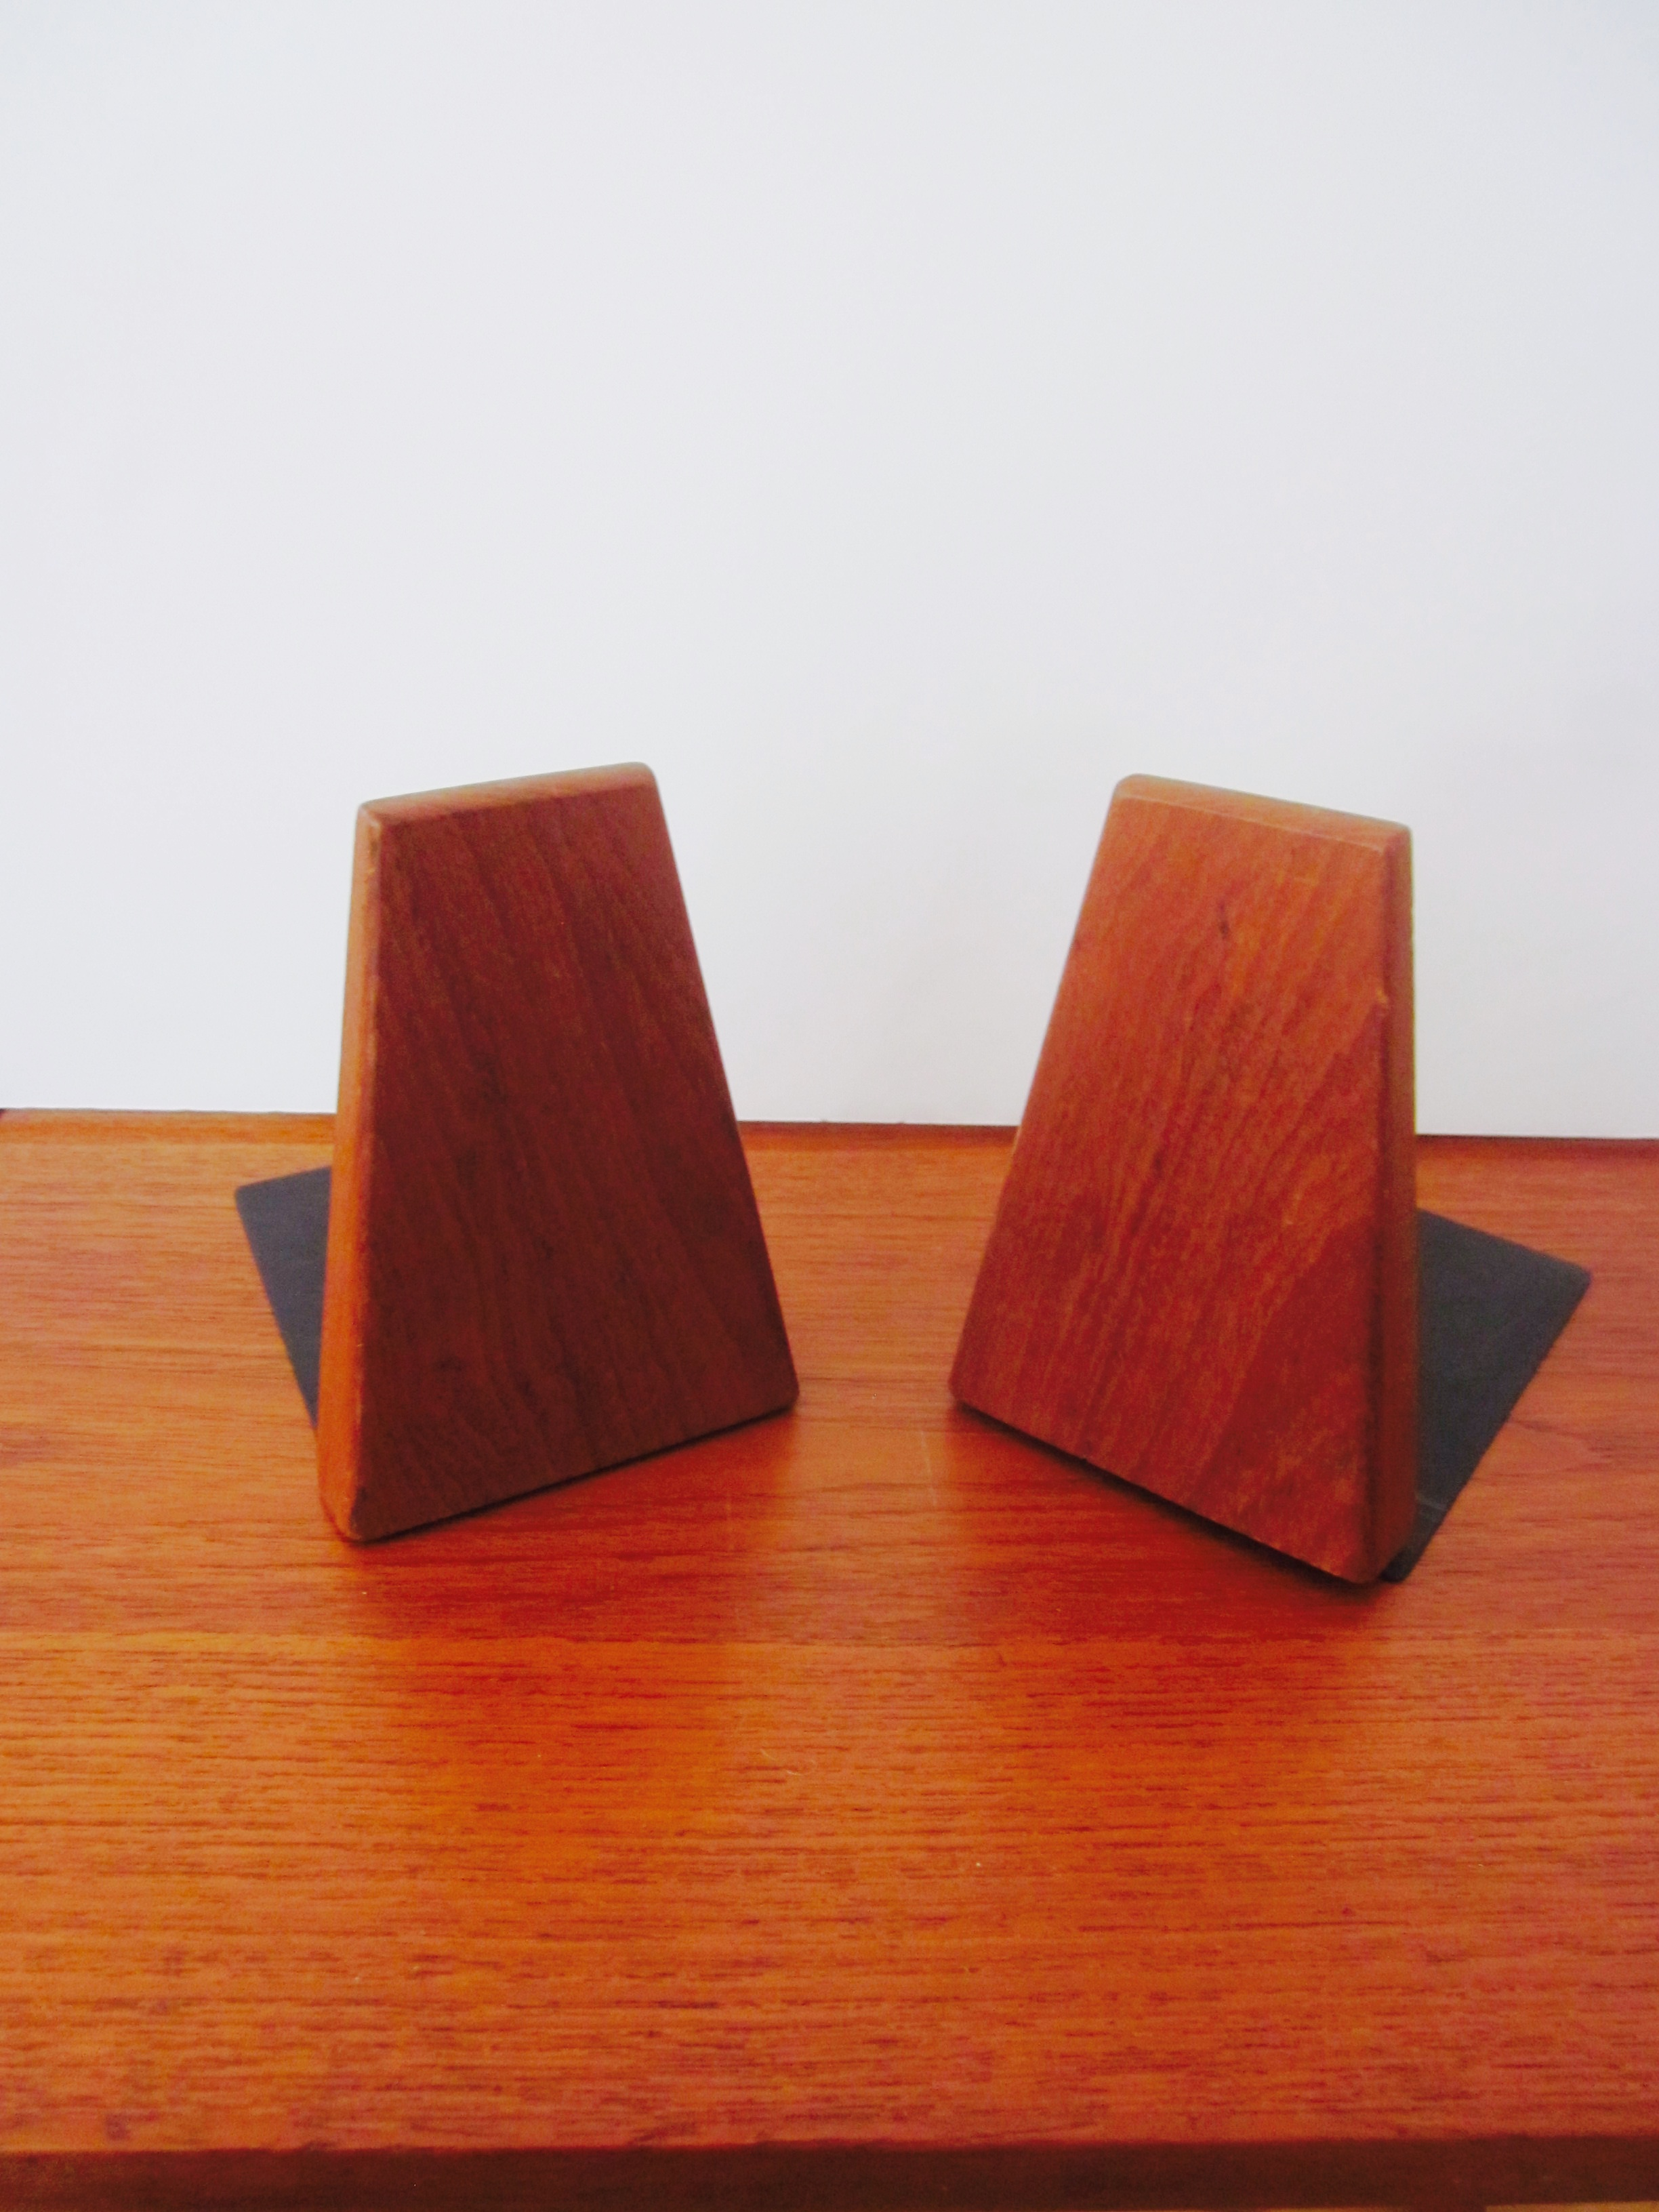 Midcentury Danish Modern Teak Bookends  A Pair  Chairish. Black Velvet Chair. Double Vanity Cabinet. 60 Inch Dining Bench. Take It For Granite. Lowes Wall Murals. Medicine Cabinet With Mirror. Chest Of Drawers. King Size Headboard